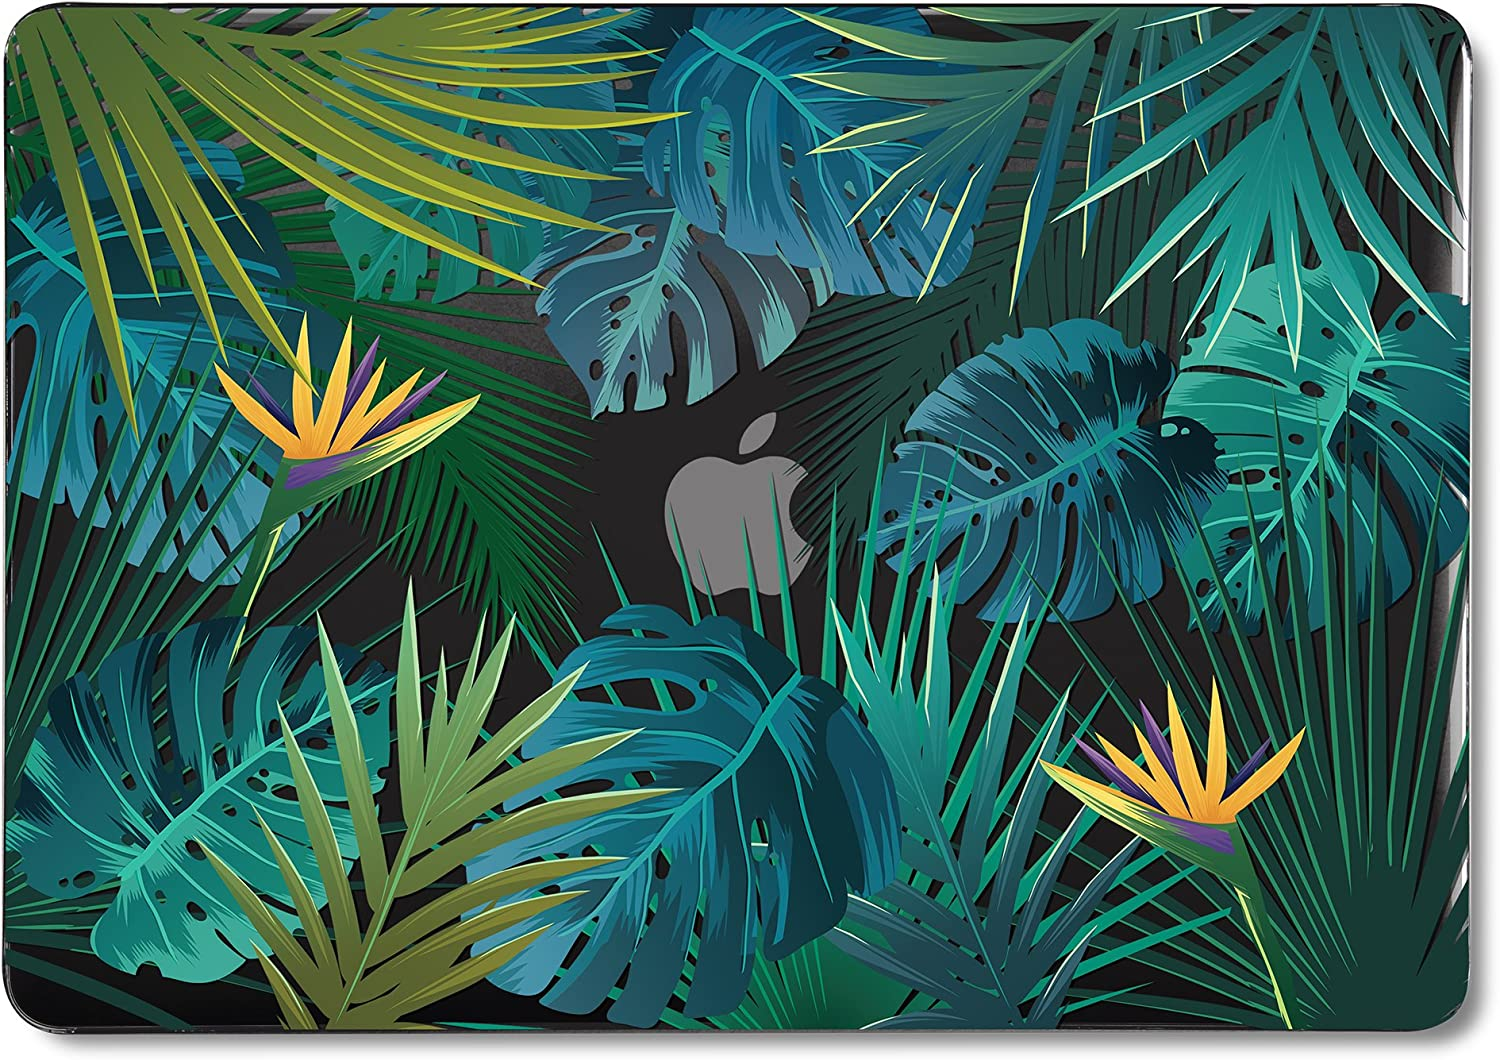 GMYLE MacBook Air 13 Inch Case A1466 A1369 Old Version 2010 2017, Hard Shell Plastic Black Crystal Snap On Cover (Tropical Summer Palm Leaf in Dark)